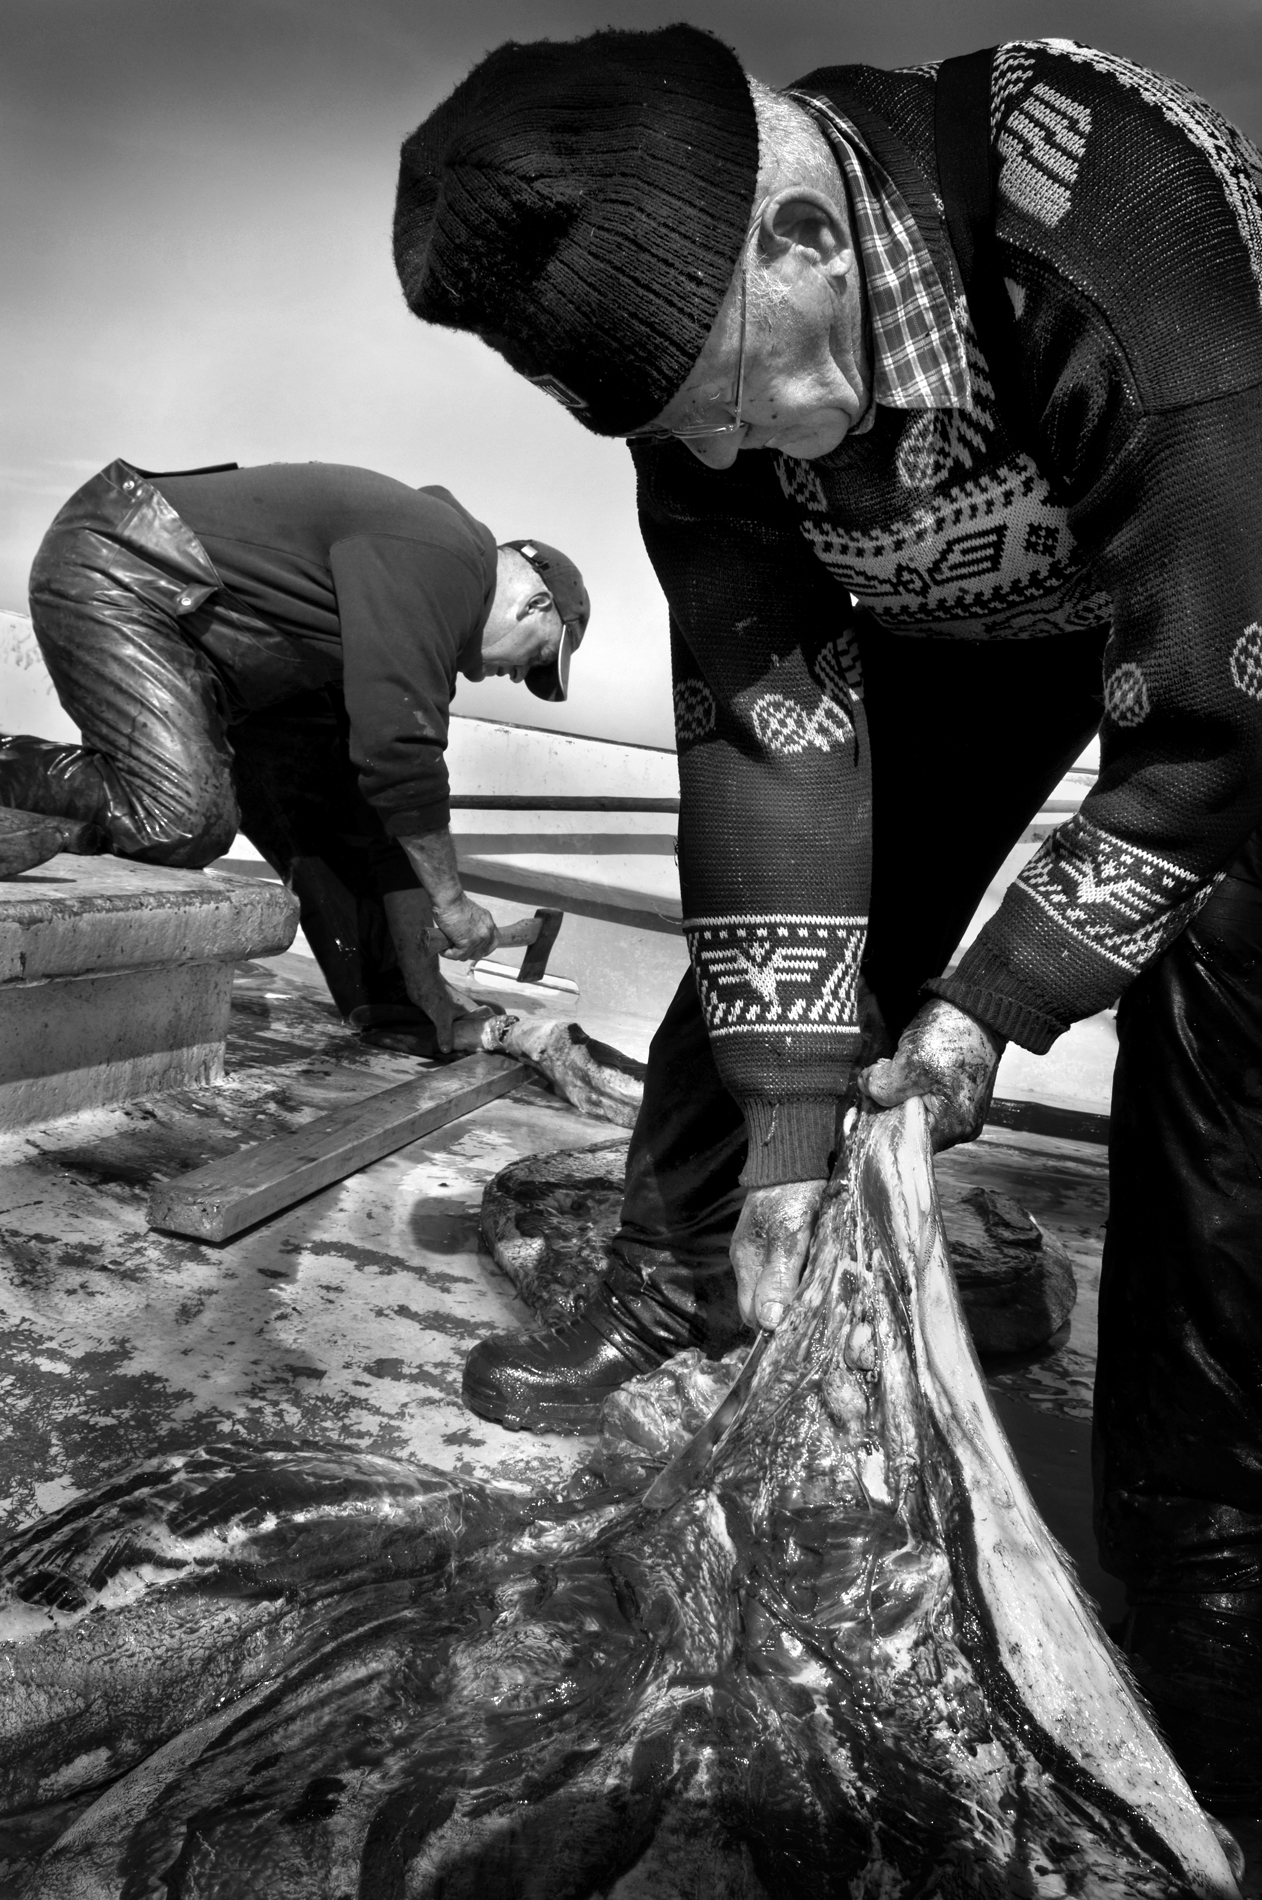 Seal Harvest (4) - Yoanis Menge Photographe - Canadian Seal Products